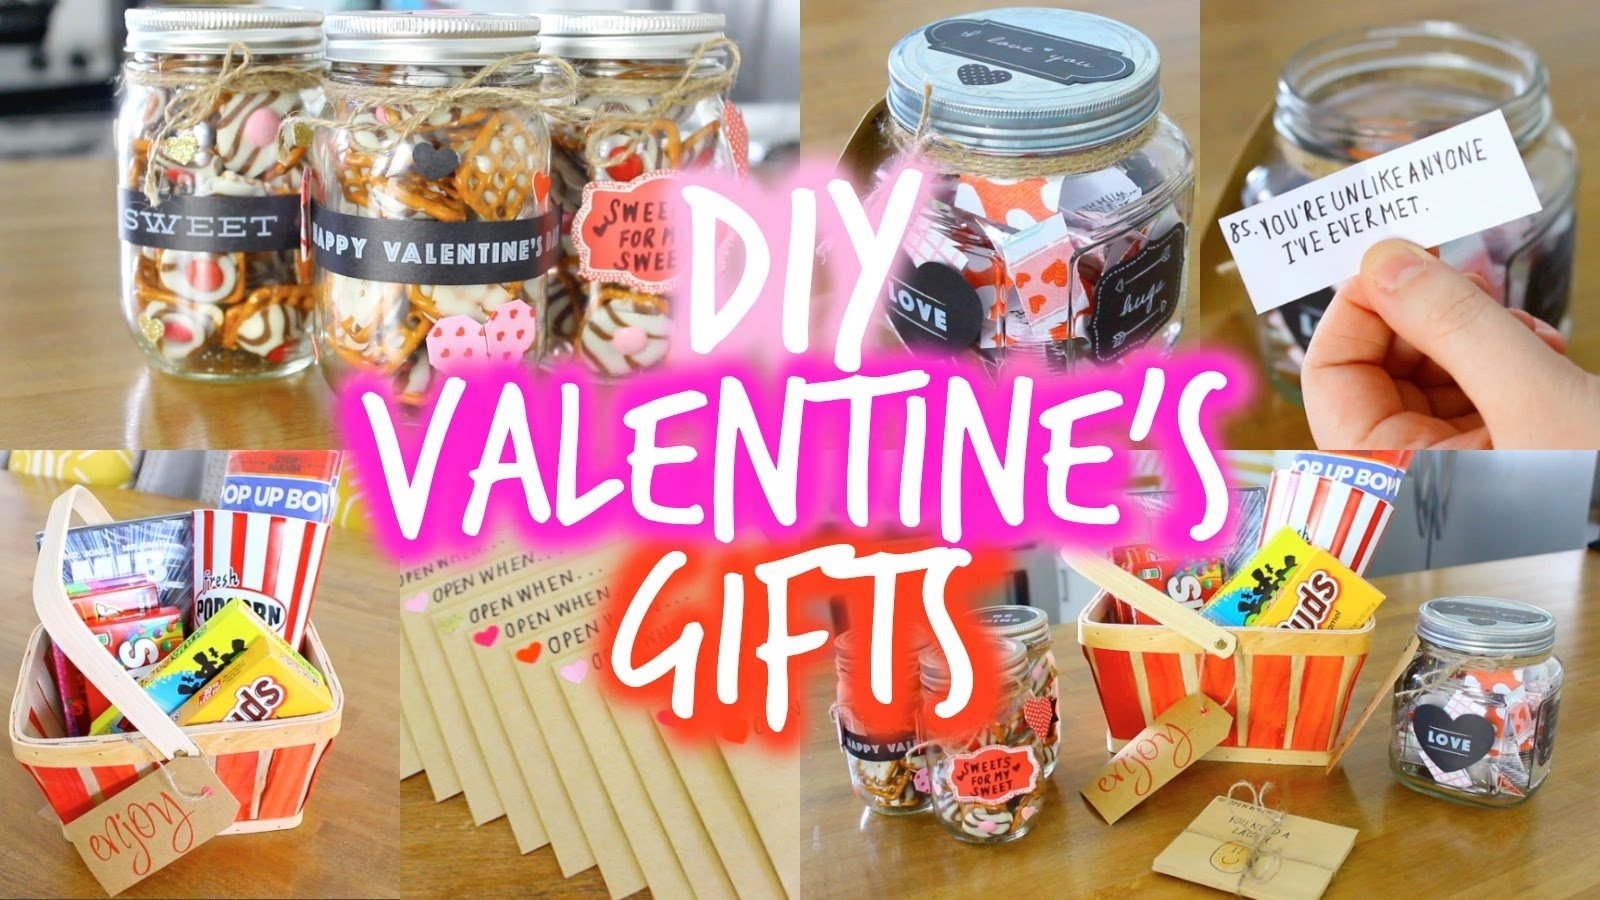 10 Stylish Good Ideas For Valentines Day For My Boyfriend easy diy valentines day gift ideas for your boyfriend youtube 11